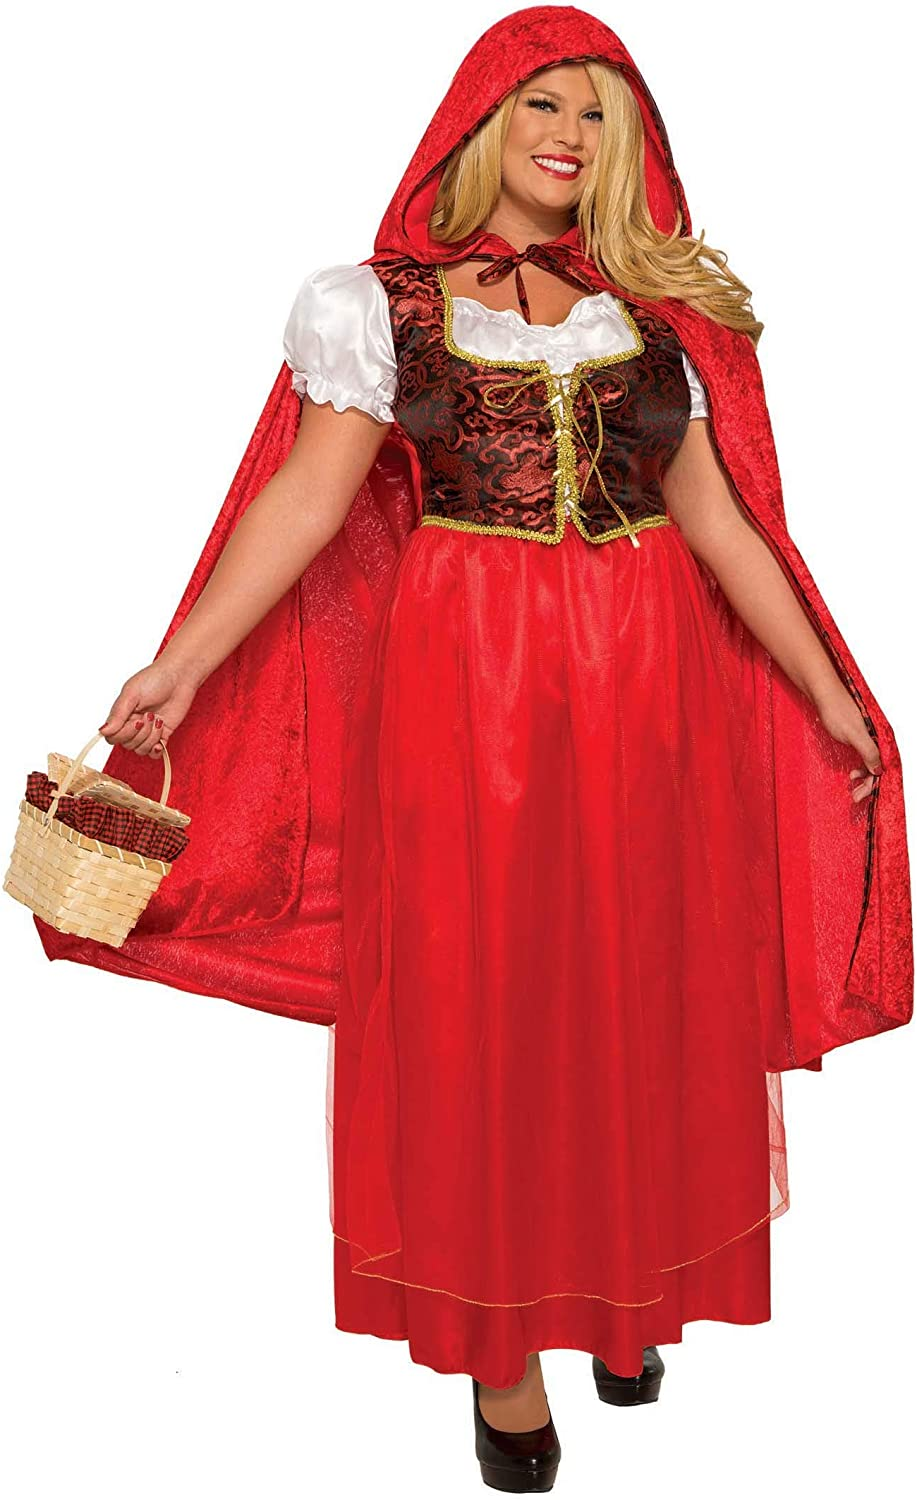 Forum Women's Red Riding Hood Costume, As Shown, Plus Size